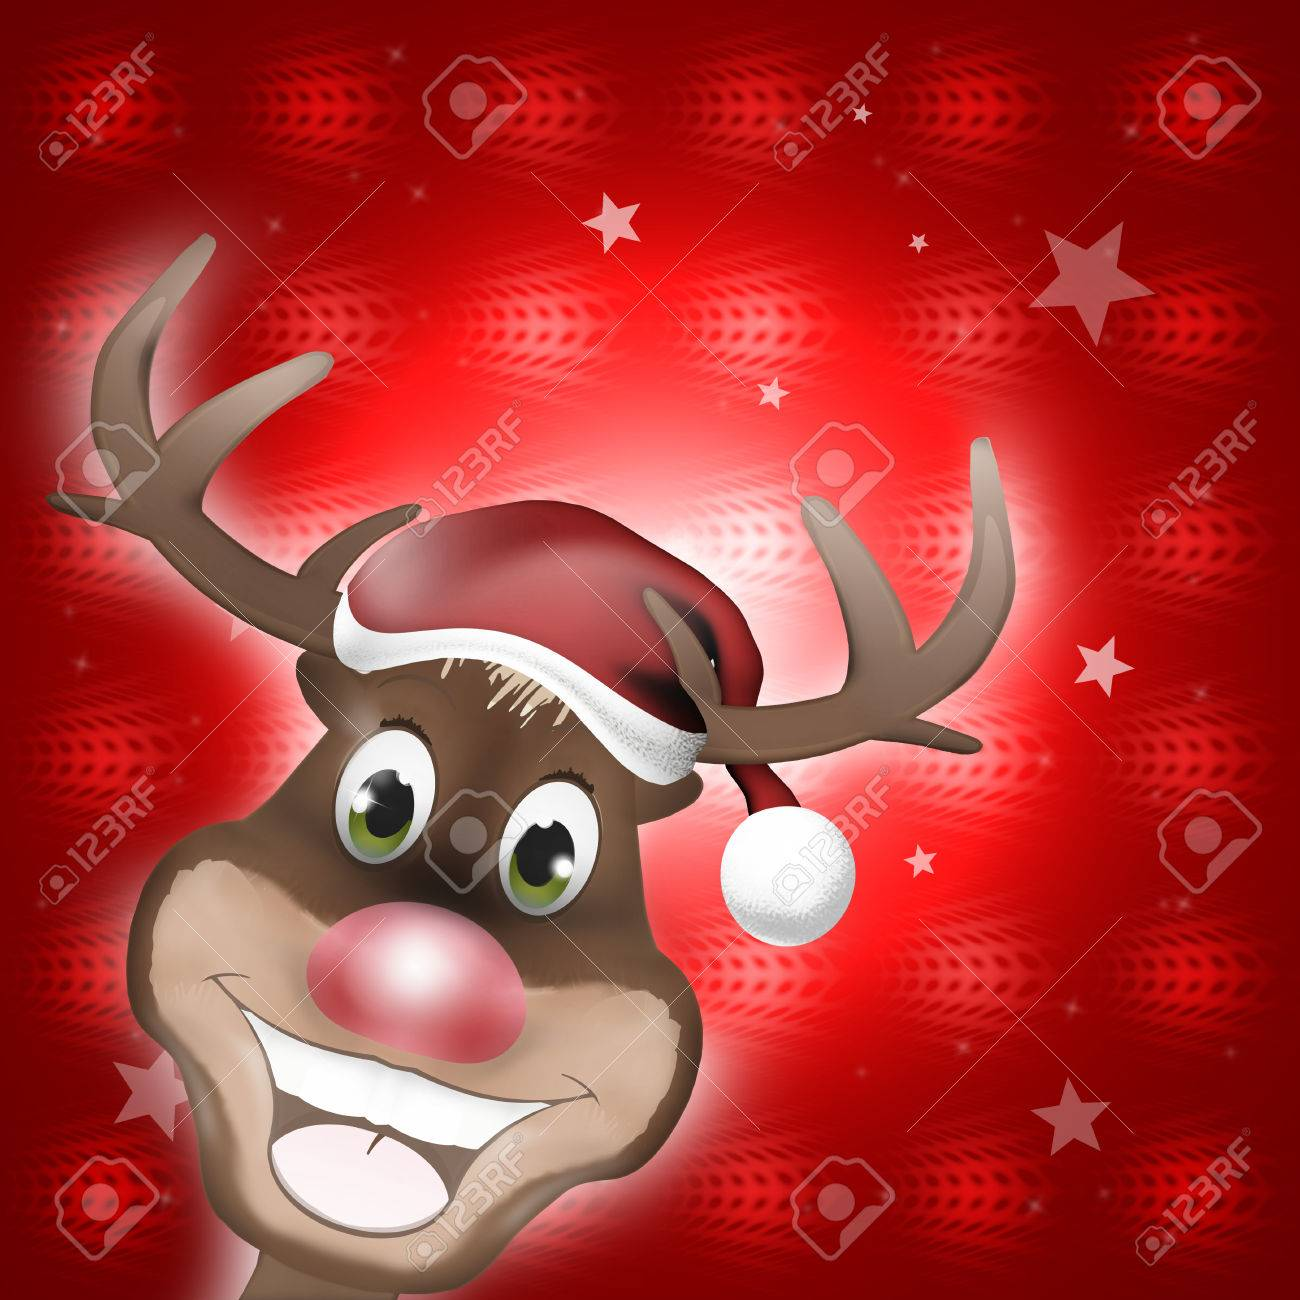 Reindeer Happy Christmas Smile Stock Photo, Picture And Royalty ...